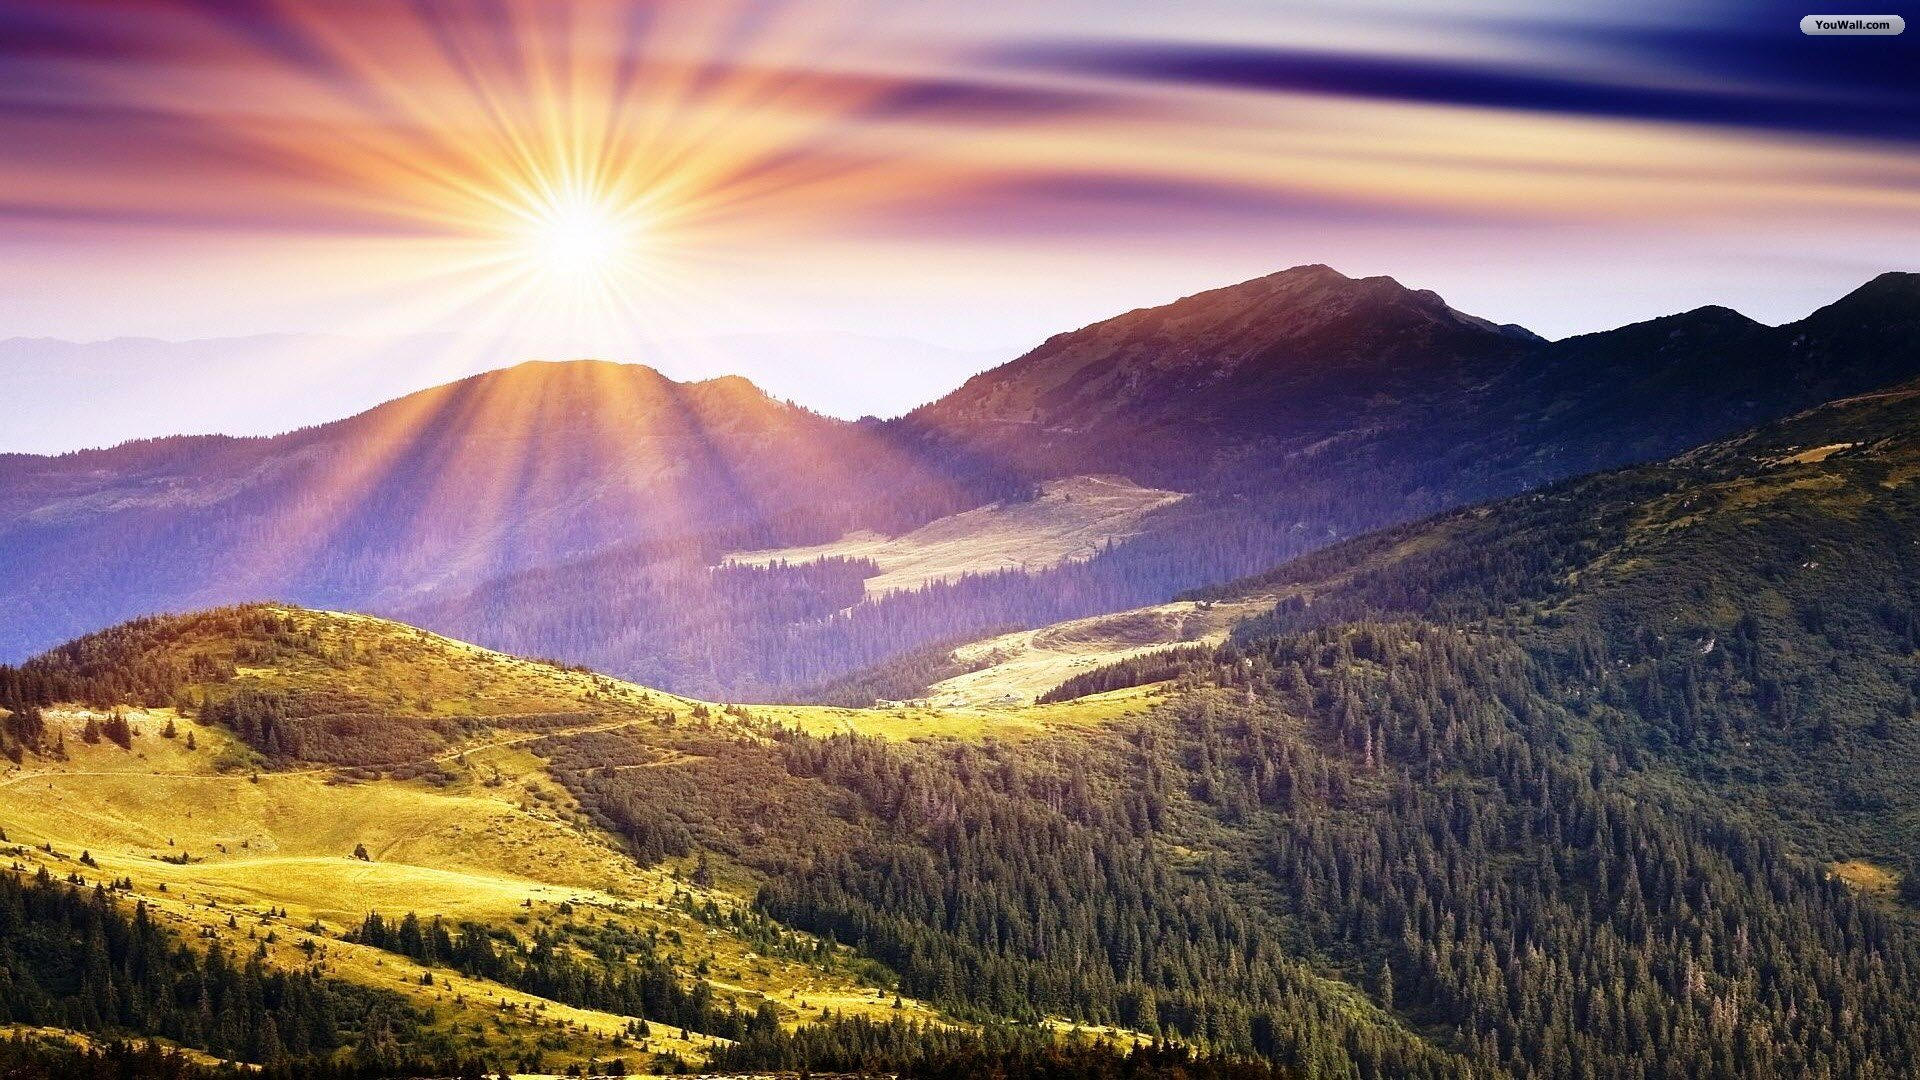 Sunny Wallpapers